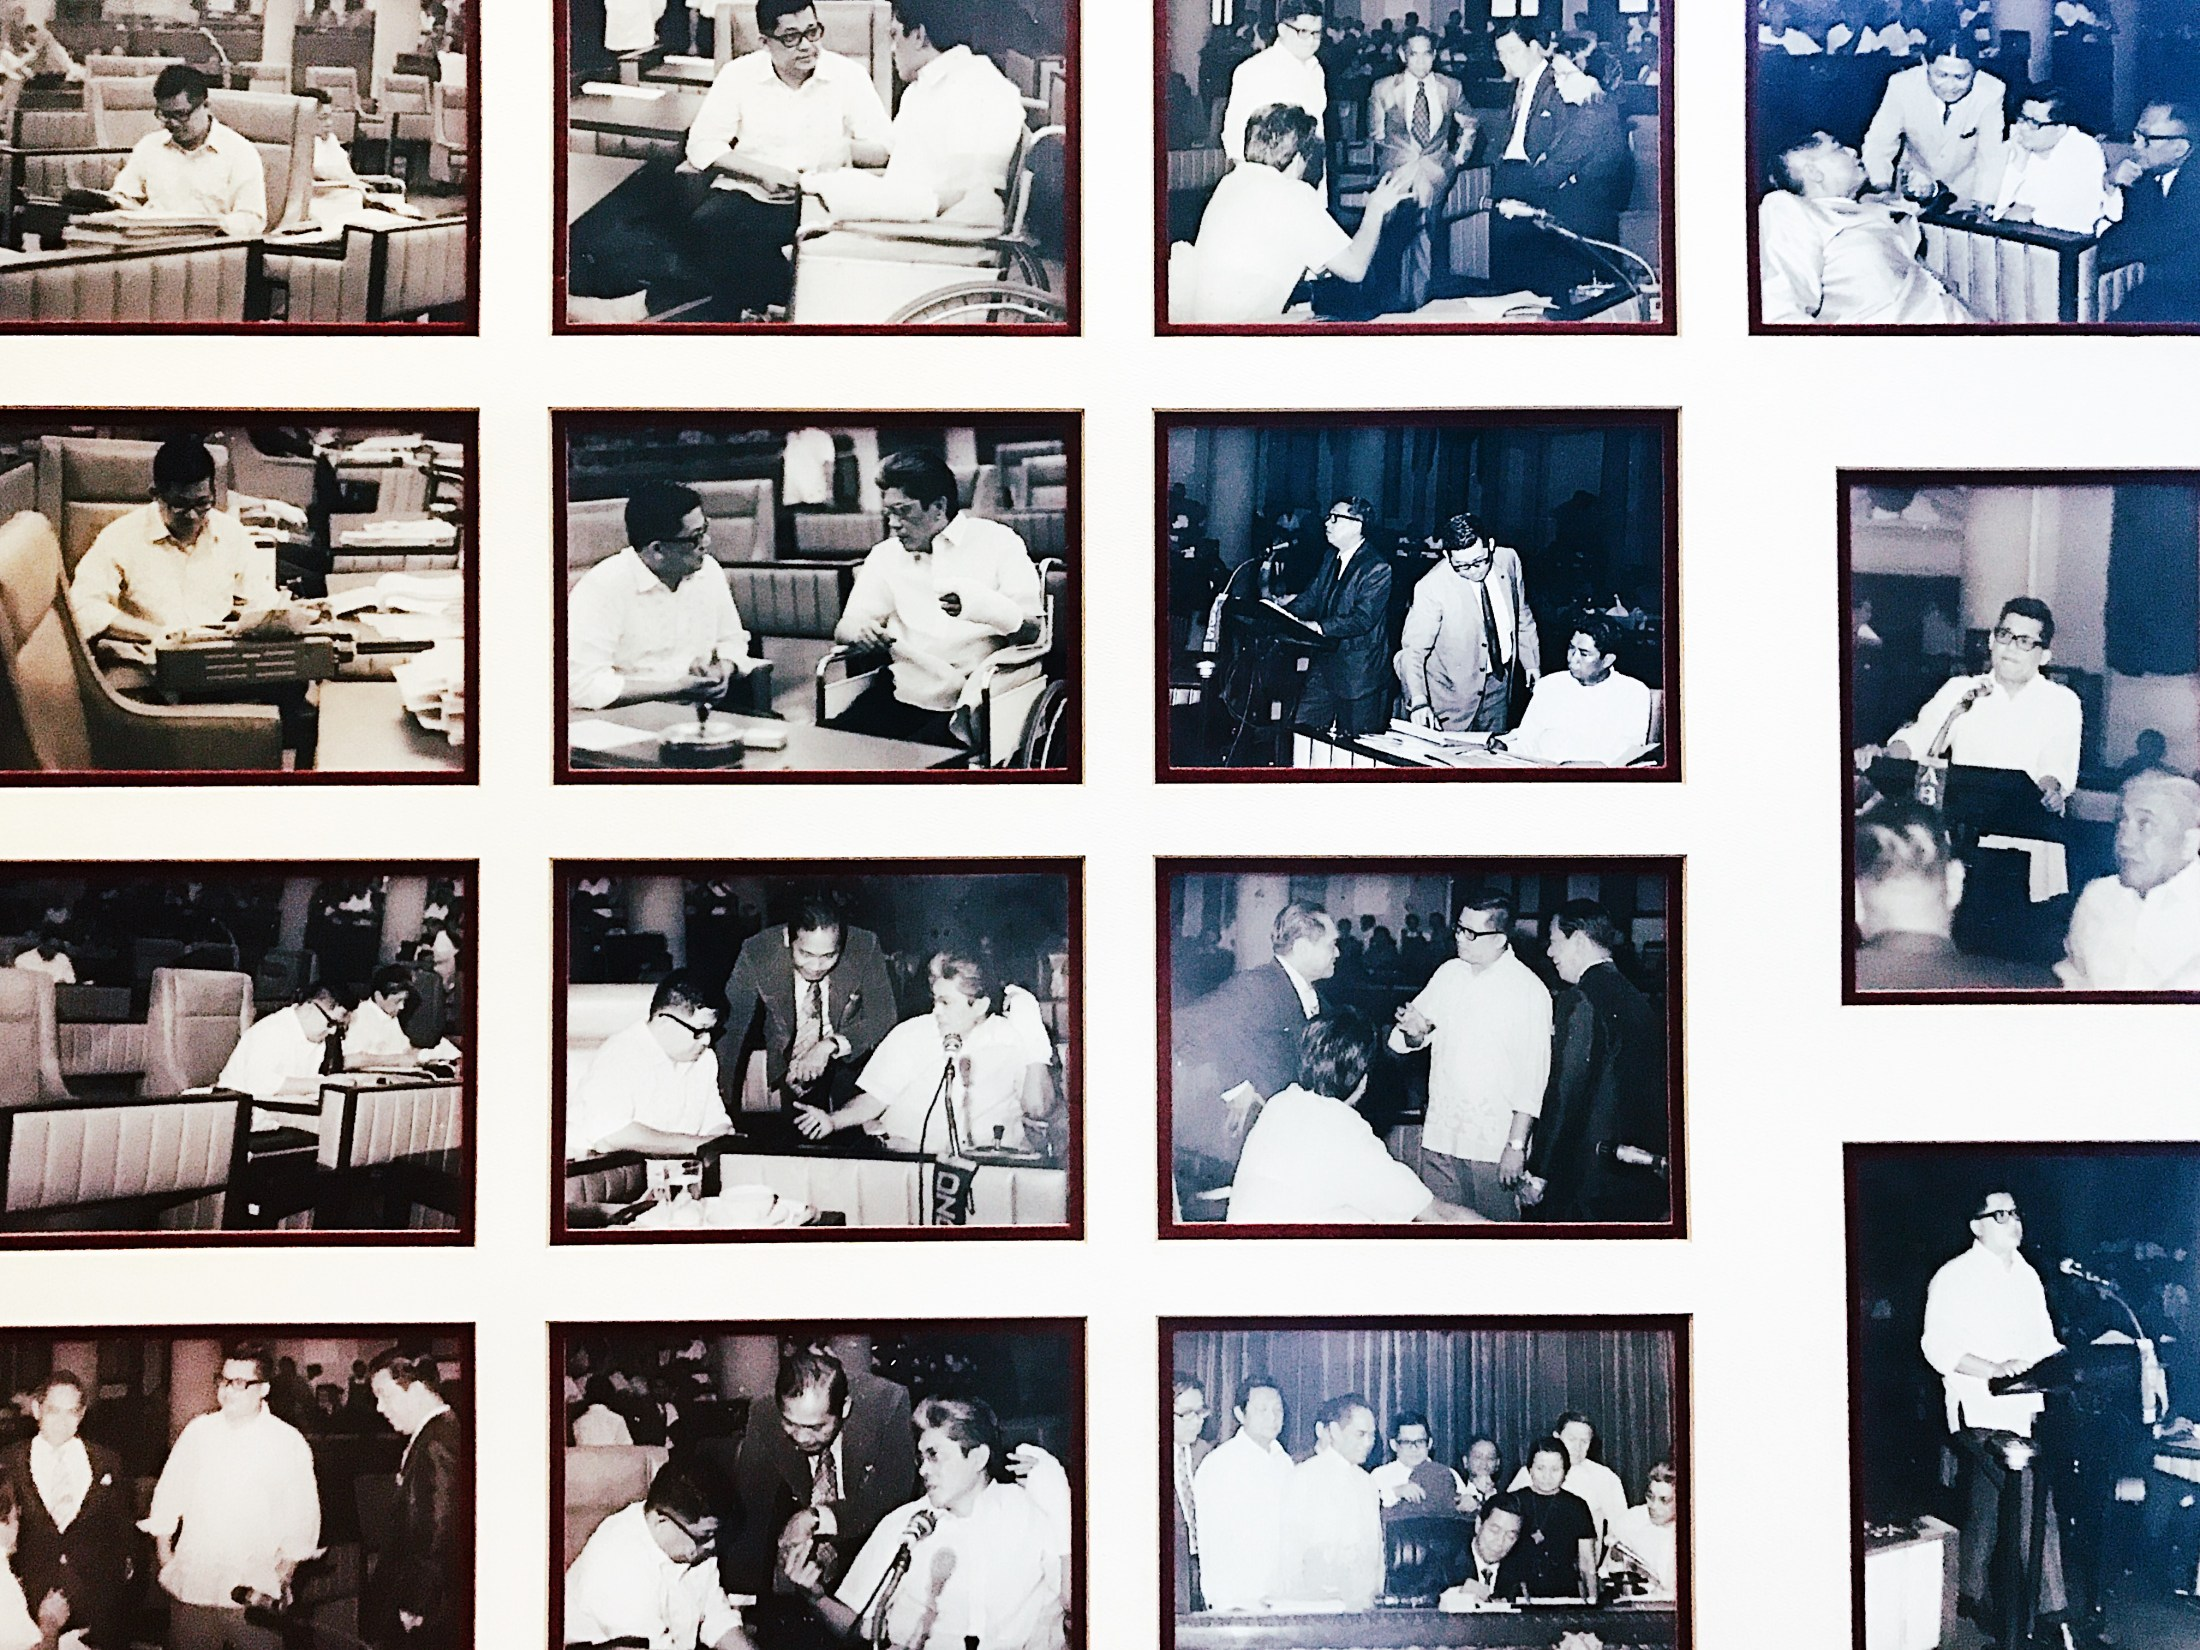 Photos from the time Ninoy Aquino was still alive.